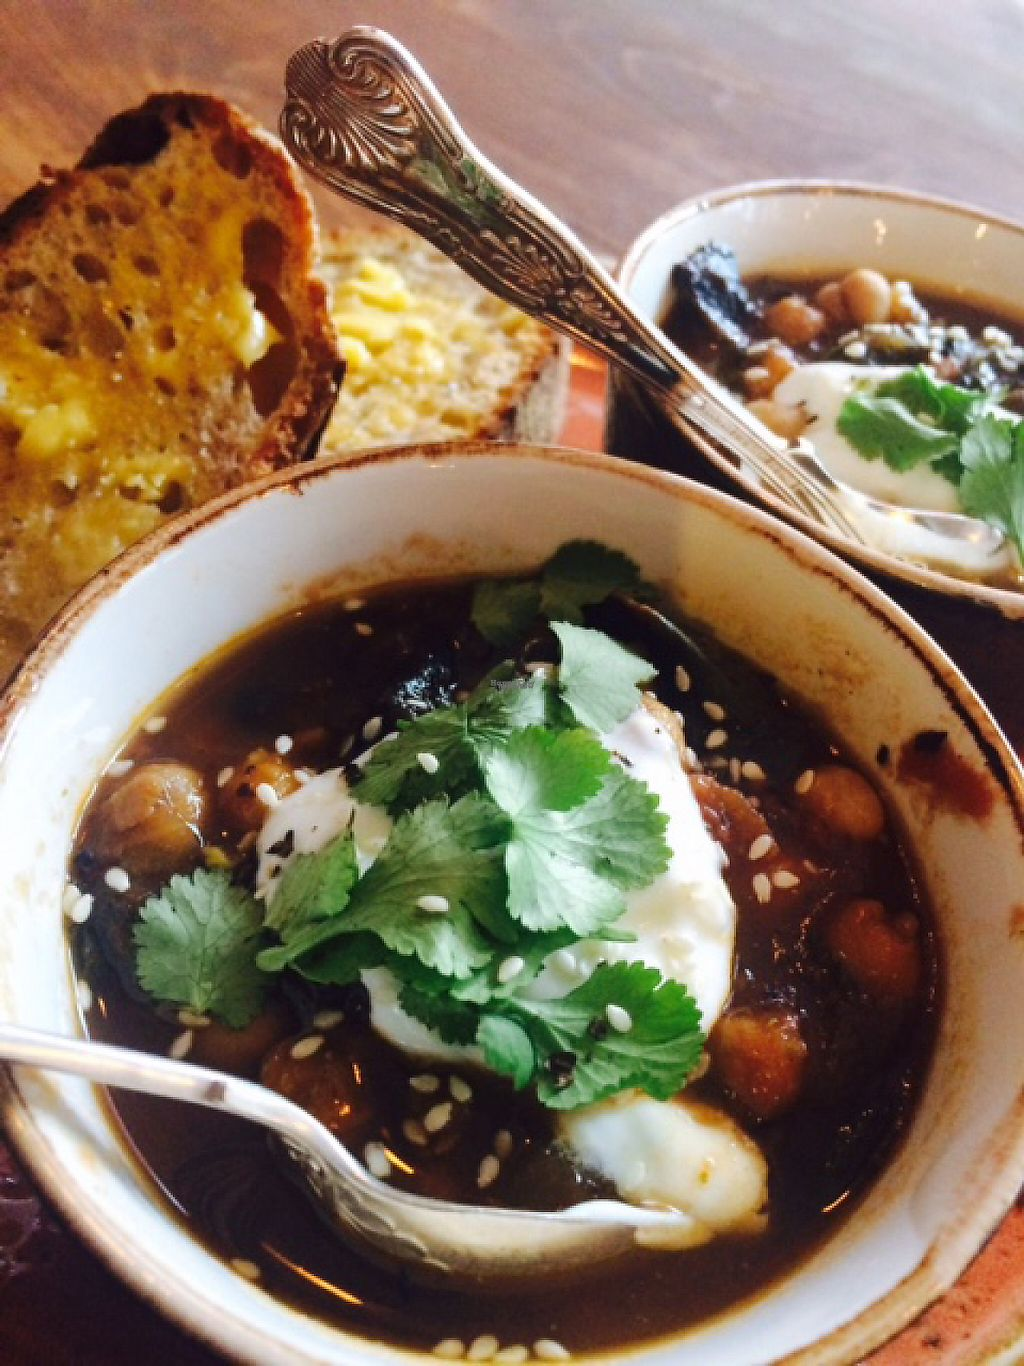 """Photo of Gather  by <a href=""""/members/profile/Gather"""">Gather</a> <br/>Chick pea chilli with soya yogurt <br/> March 11, 2017  - <a href='/contact/abuse/image/88432/235275'>Report</a>"""